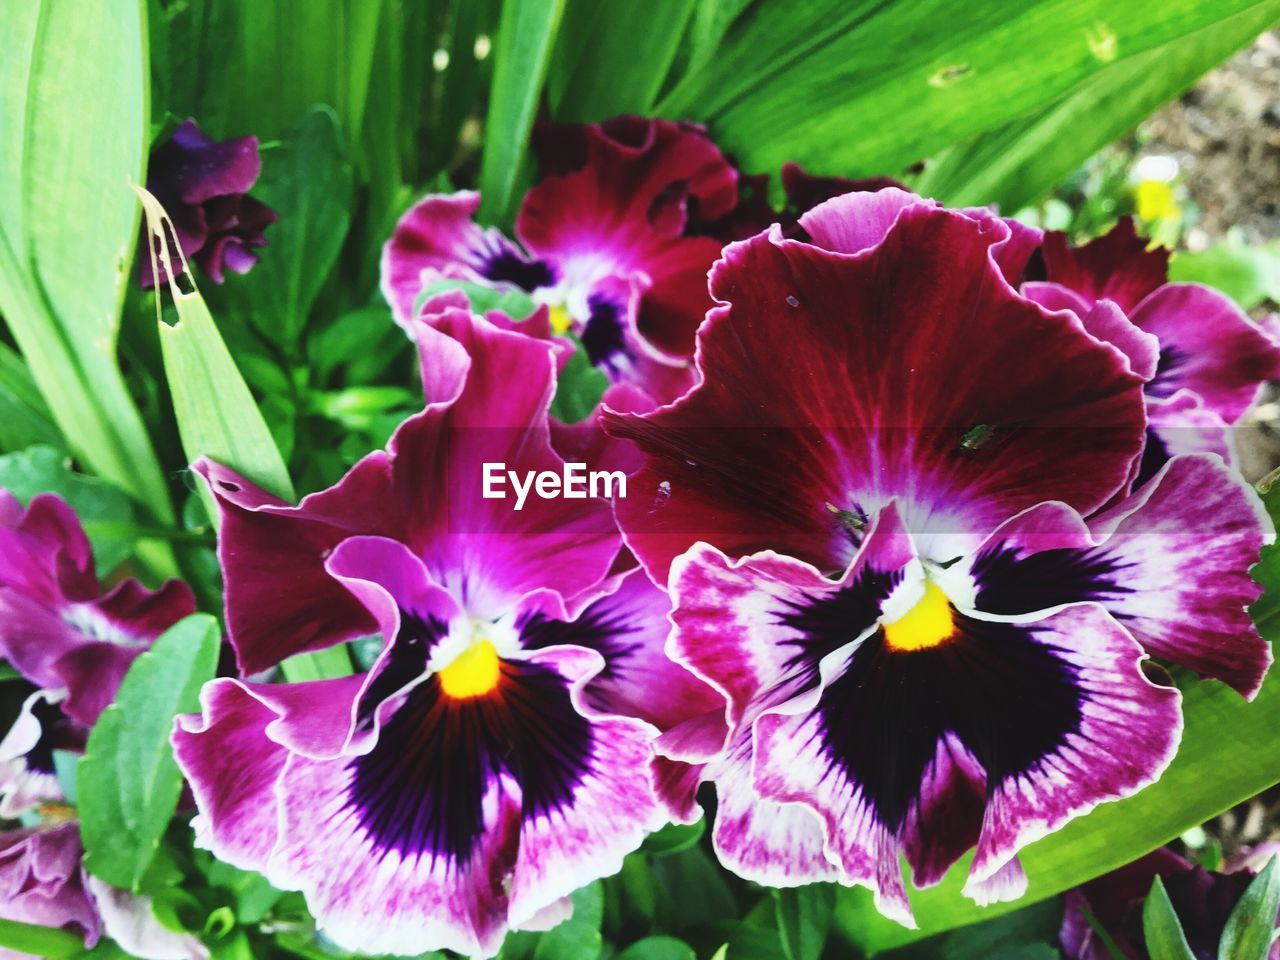 flower, petal, beauty in nature, purple, nature, fragility, growth, plant, flower head, blooming, freshness, no people, outdoors, close-up, day, iris - plant, petunia